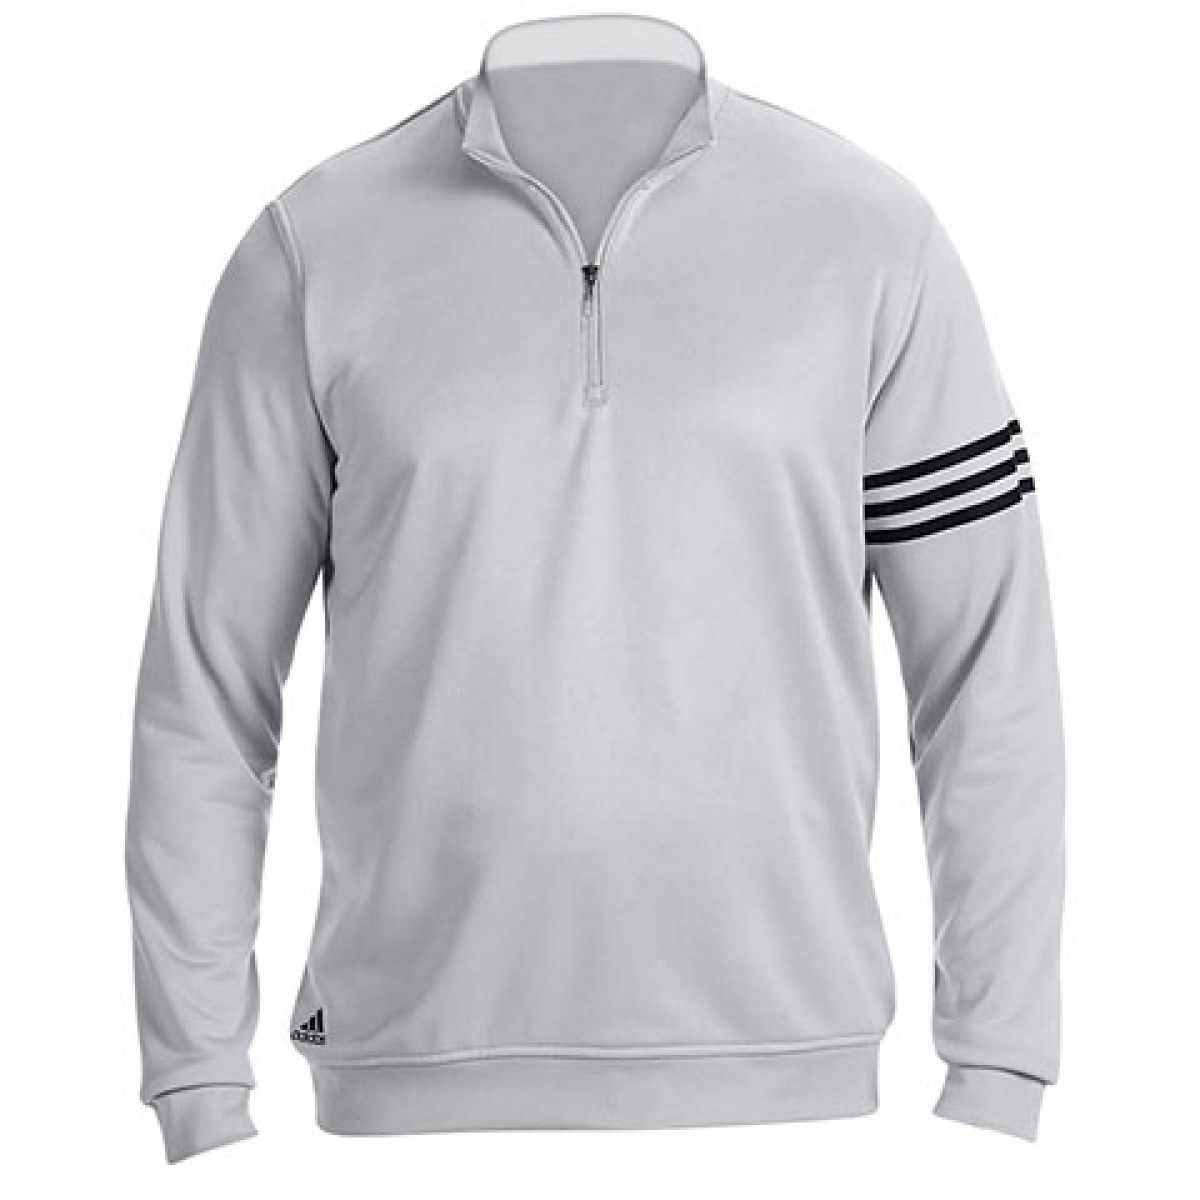 Adidas Men's 3-Stripes Pullover-Gray -S